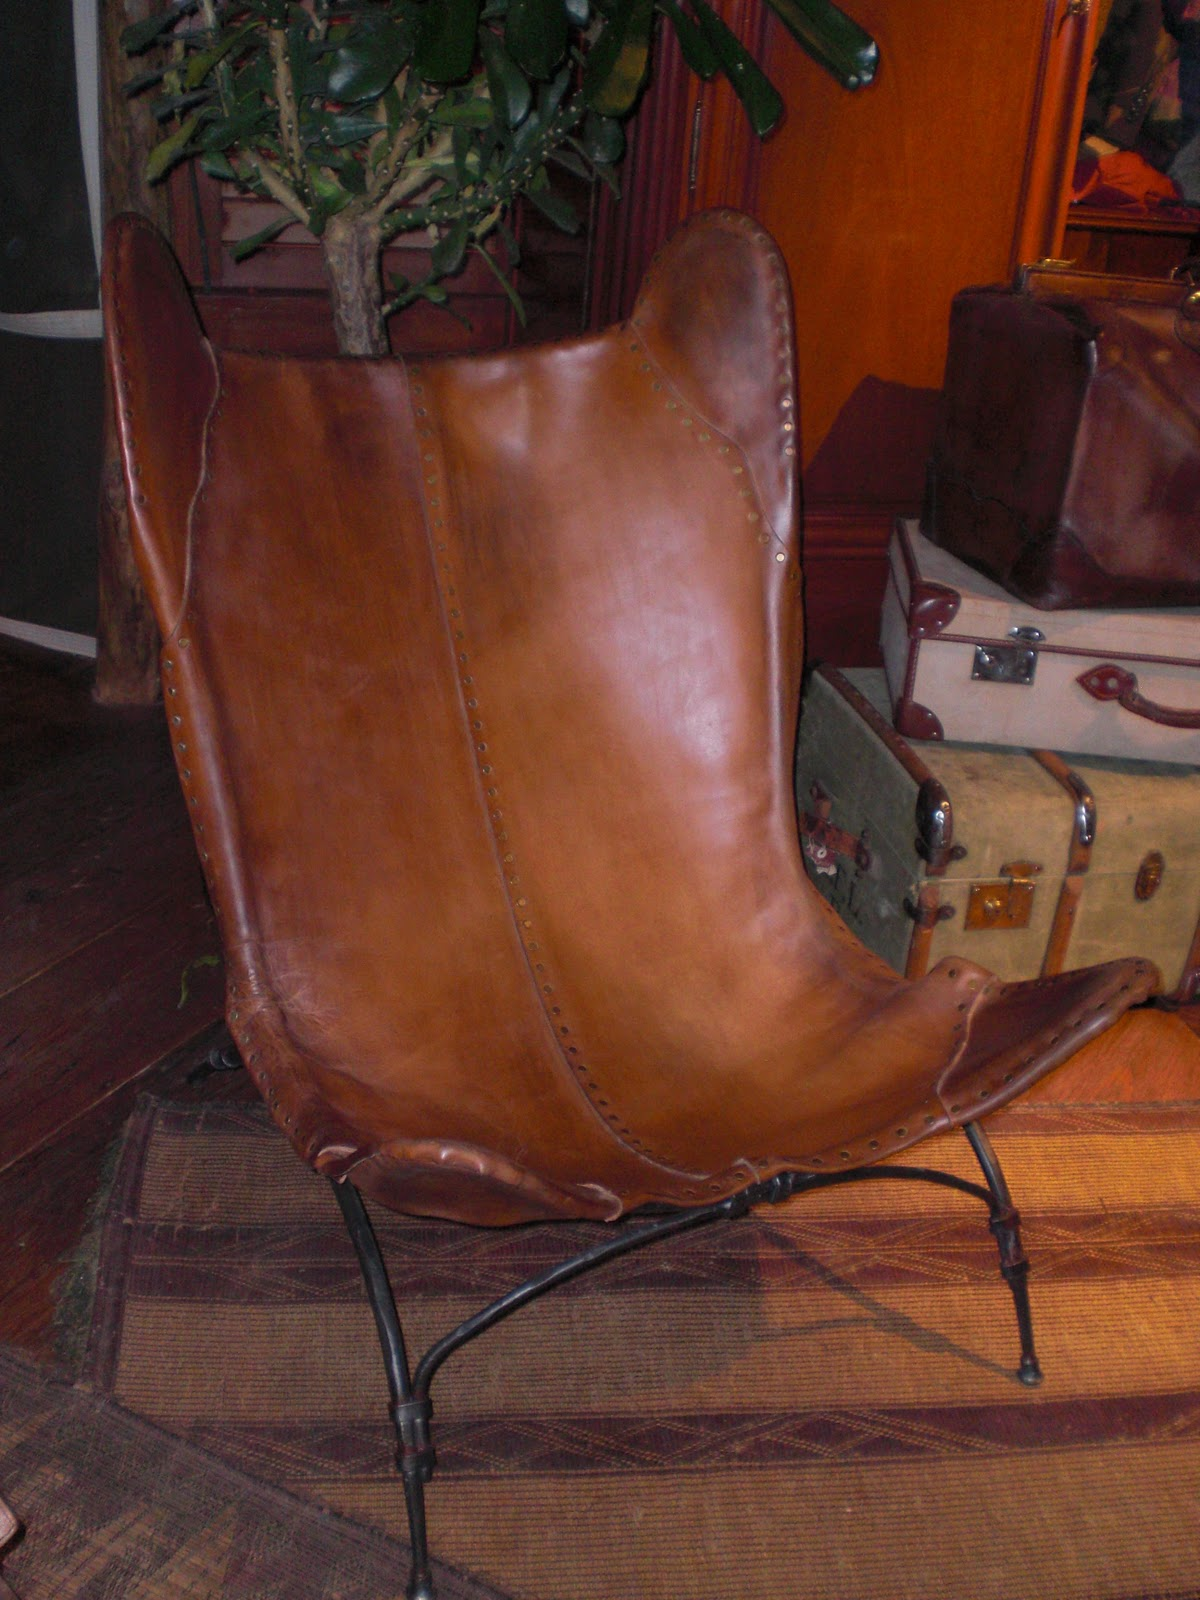 mannerofstyle ralph lauren home releases safari inspired 2011 i honestly thought this new safari camp chair was over 100 years old the leather has a beautifully worn patina